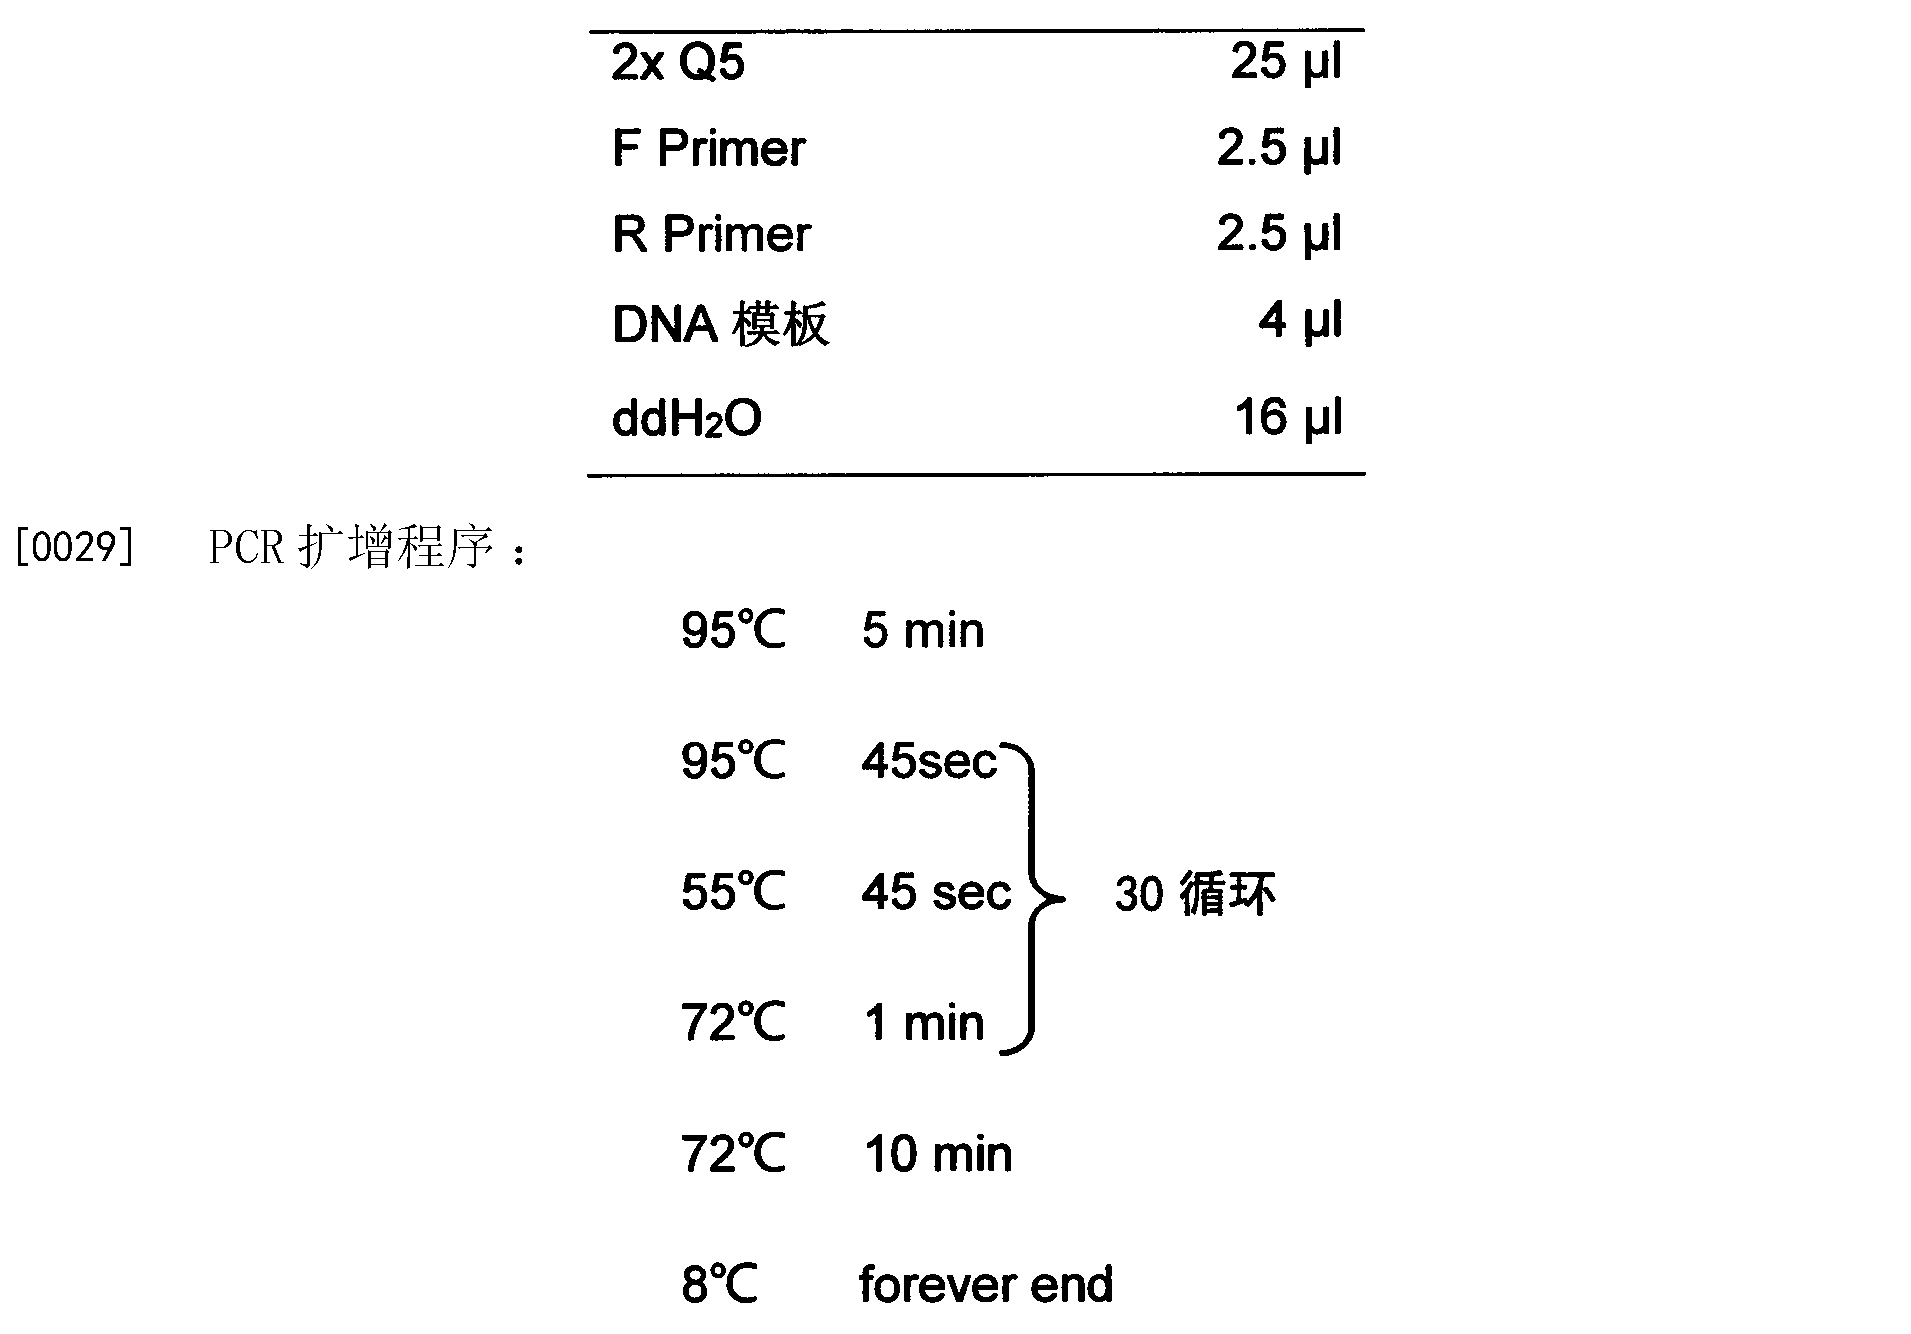 CN104826100A - Preparation method and application of